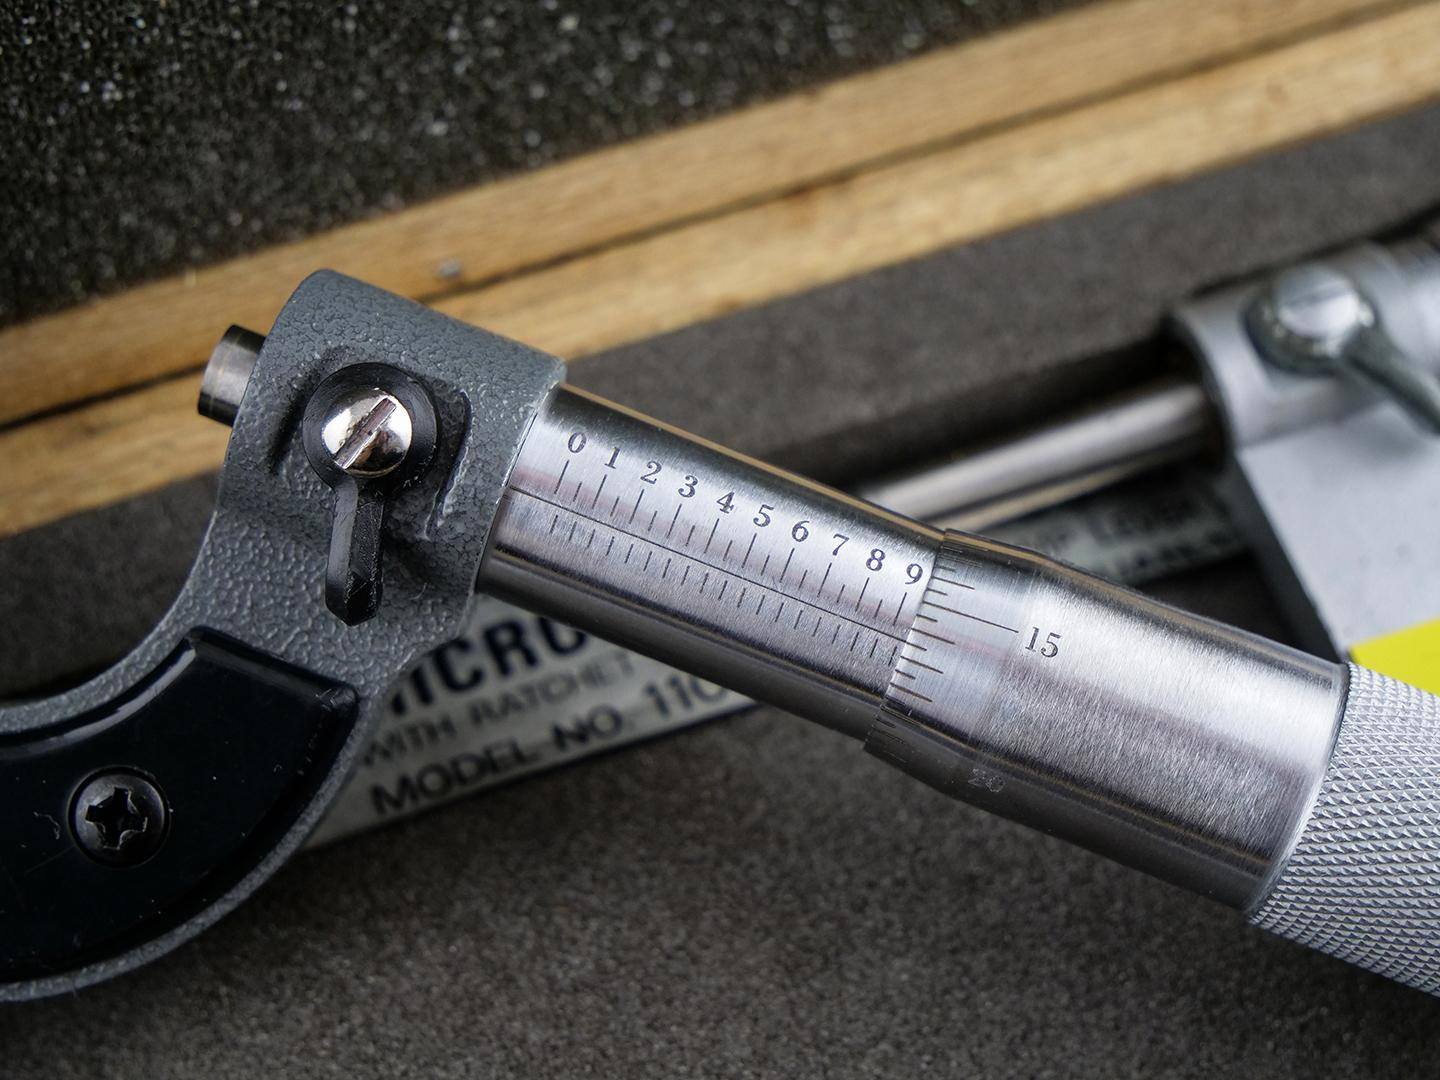 A micrometer engraved